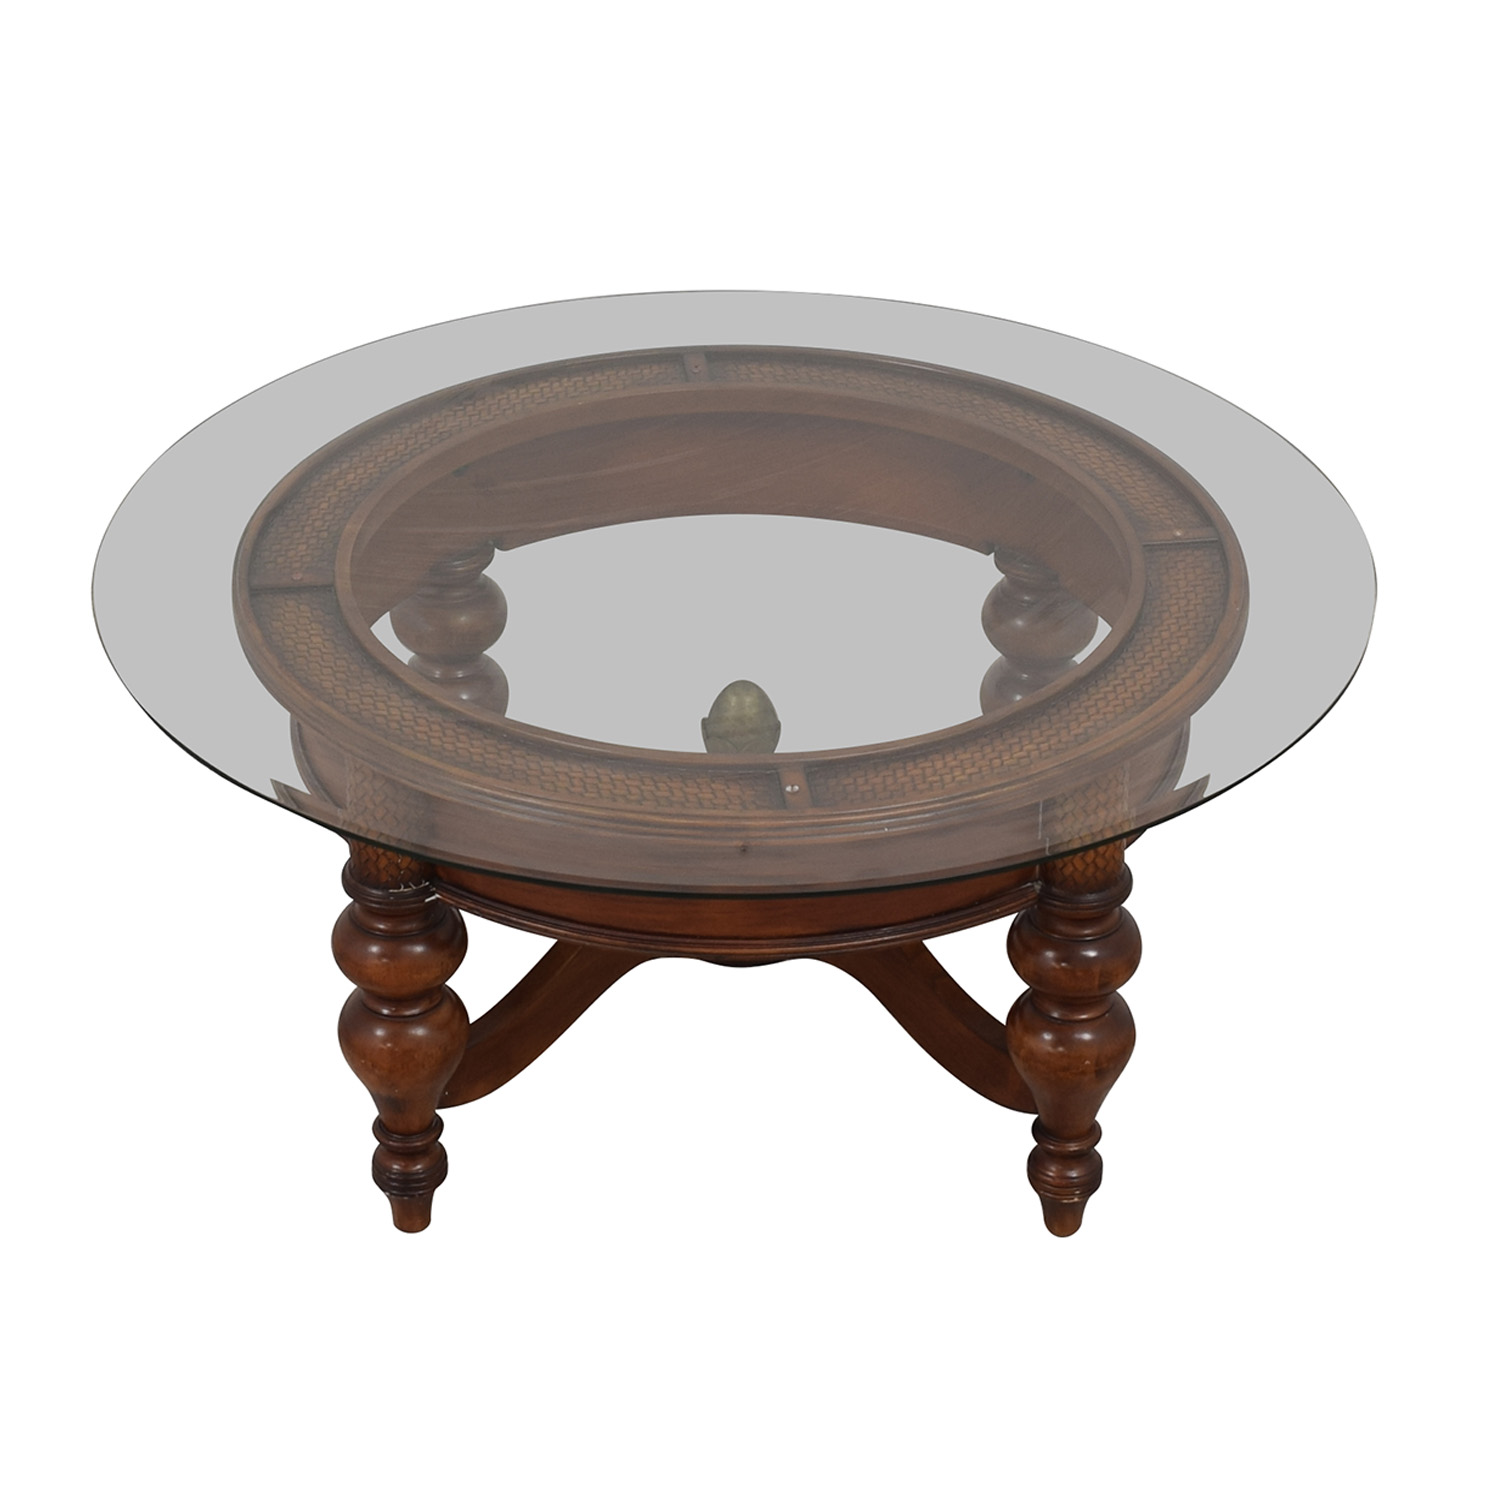 Round Coffee Table with Transparent Surface